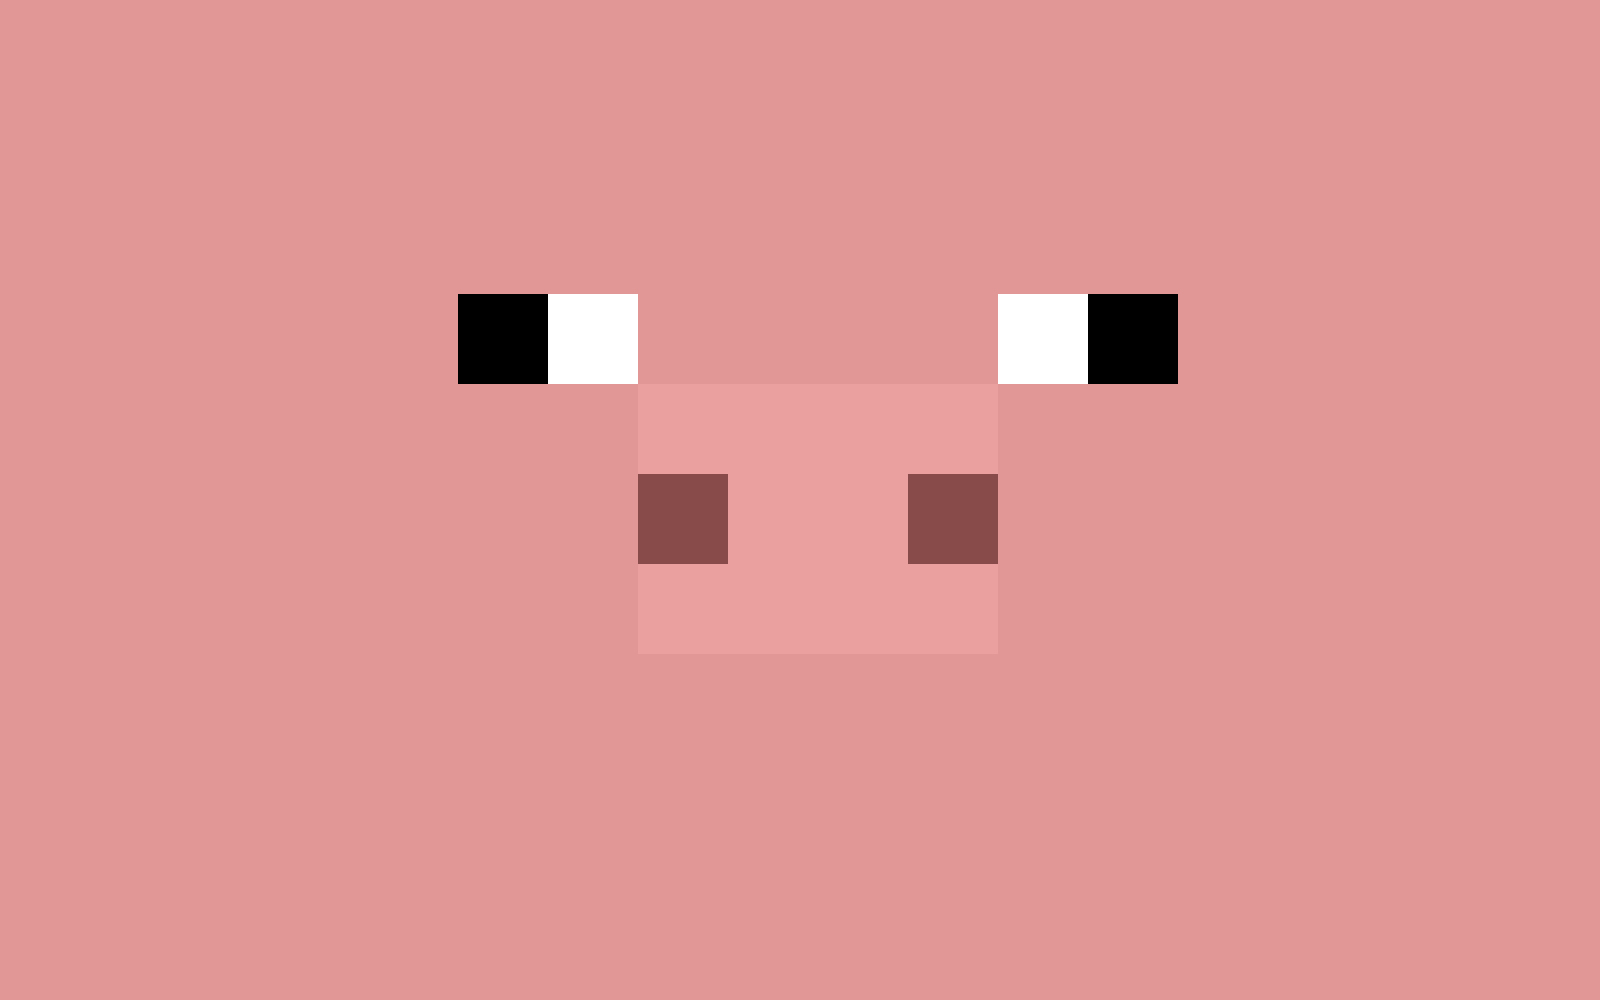 minecraft pig wallpapers download - photo #5